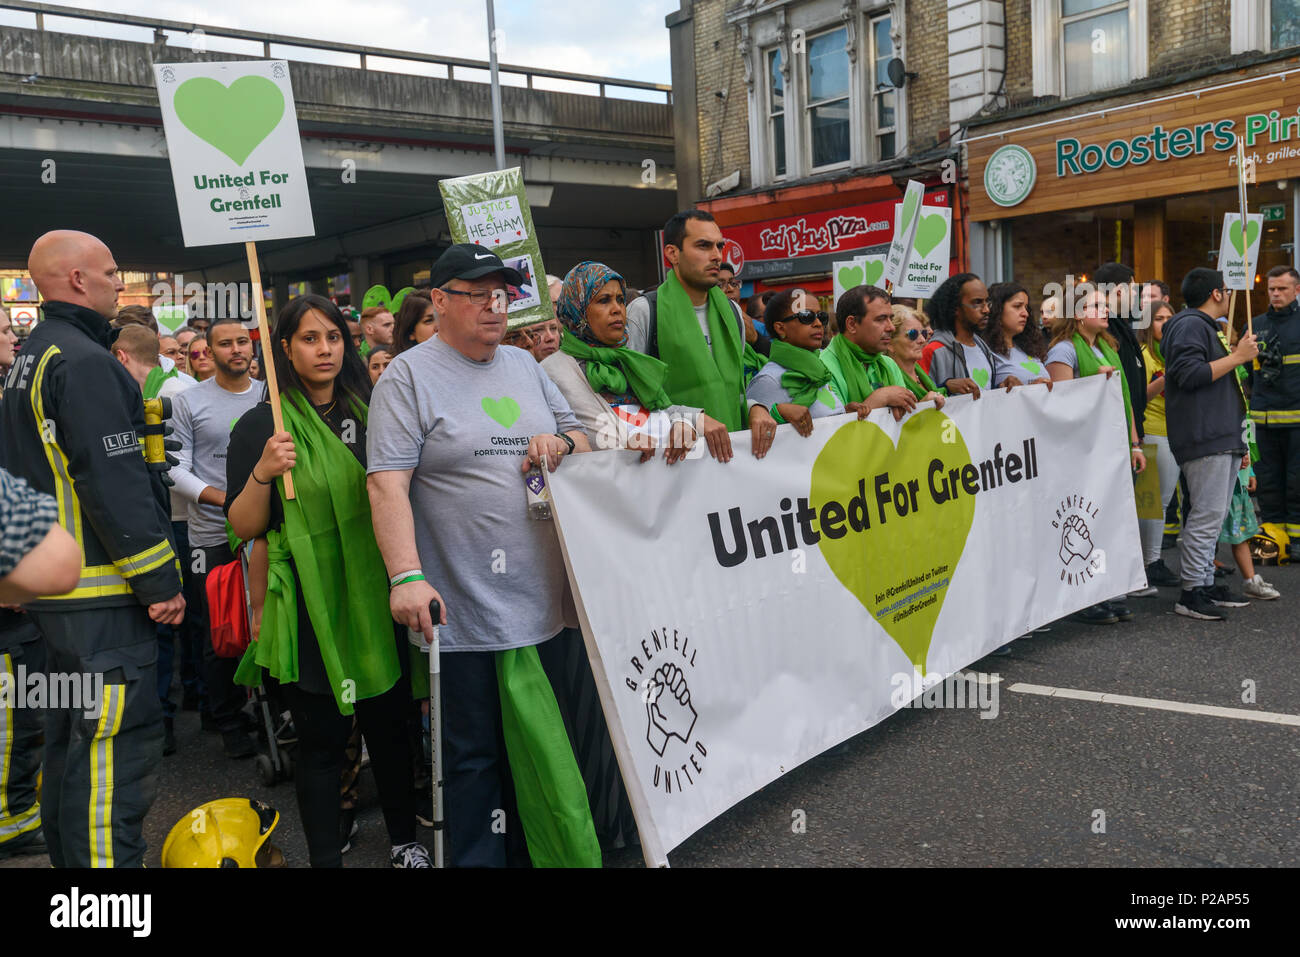 London, UK. 14th June 2018. The 'United for Grenfell' banner at the front of the march halts between the two rows of firefighters froming a guard of honour on Ladbroke Grove. Thousands walked in silence from close to Grenfell Tower remembering the victims of the disaster on the first anniversary of the disastrous fire which killed 72 and left survivors traumatised. Many of those made homeless by the fire are still in temporary accomodation a year later despite promises mde by Theresa May and Kensington & Chelsea council, who many fell have failed the local community both before and after the f - Stock Image